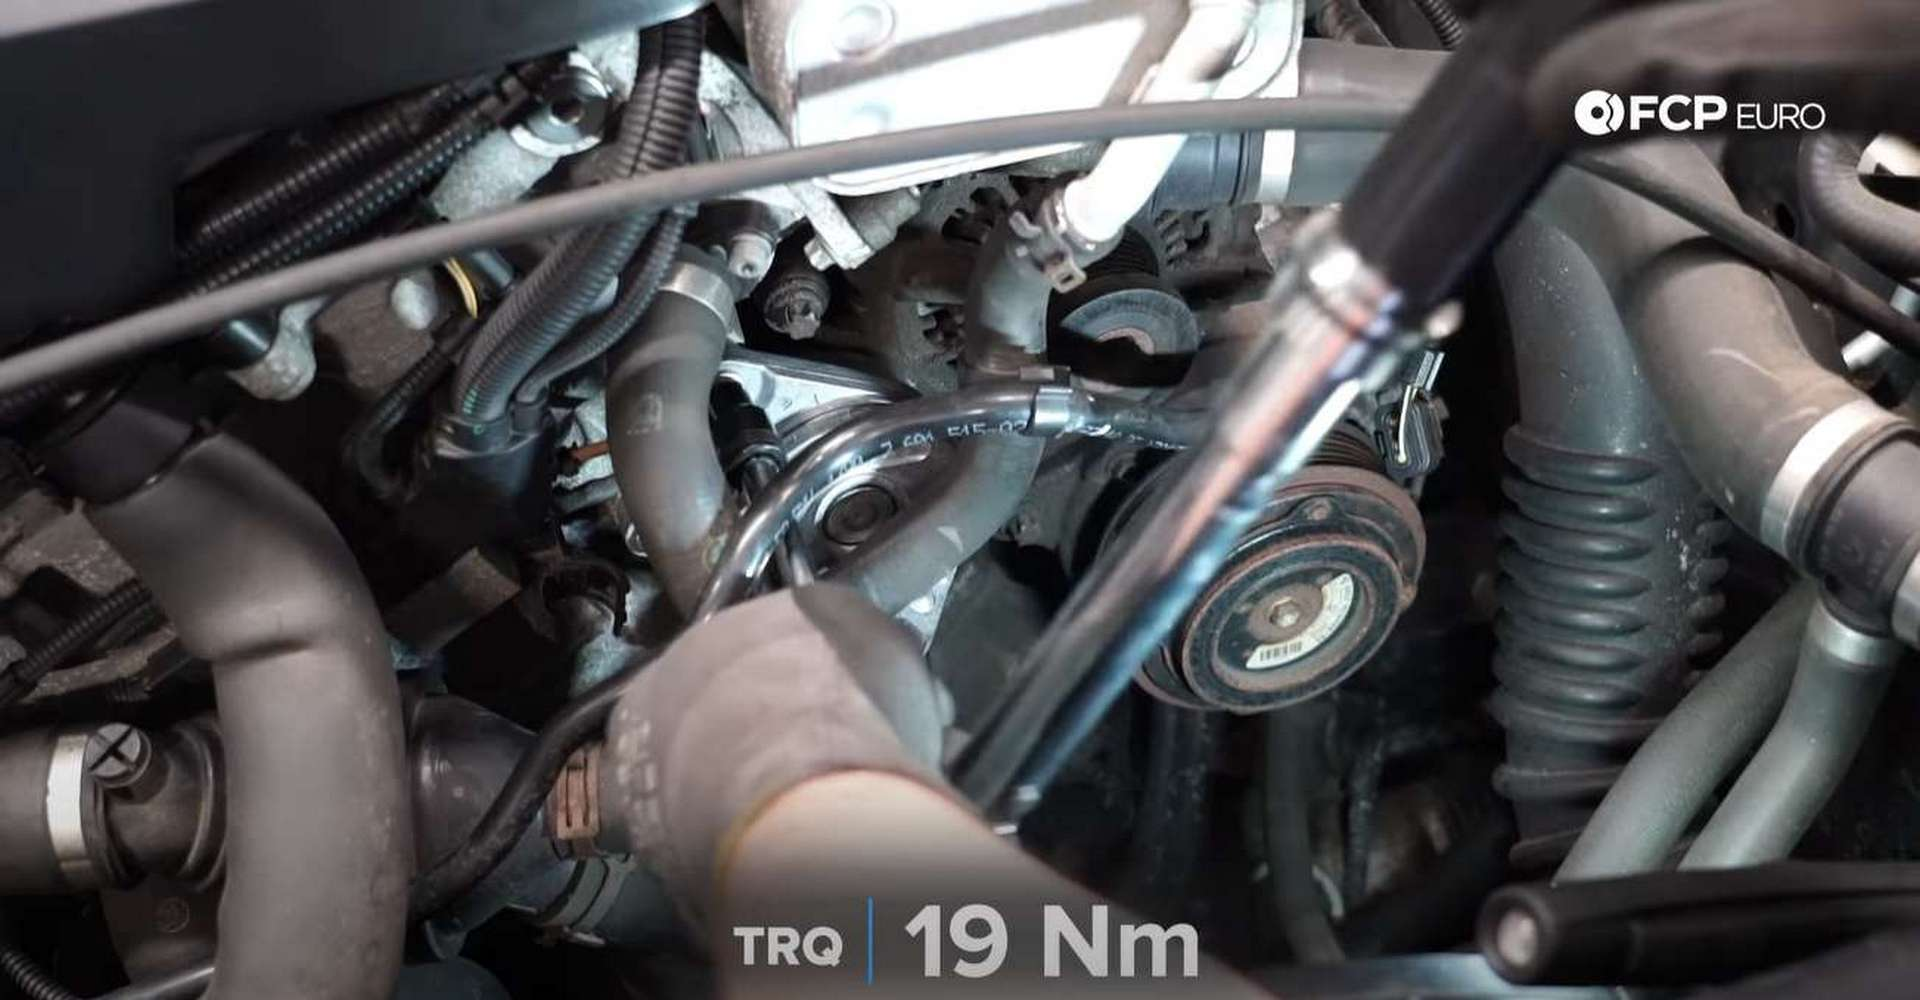 DIY BMW F30 Serpentine Belt Replacement torquing the tensioner's bolts